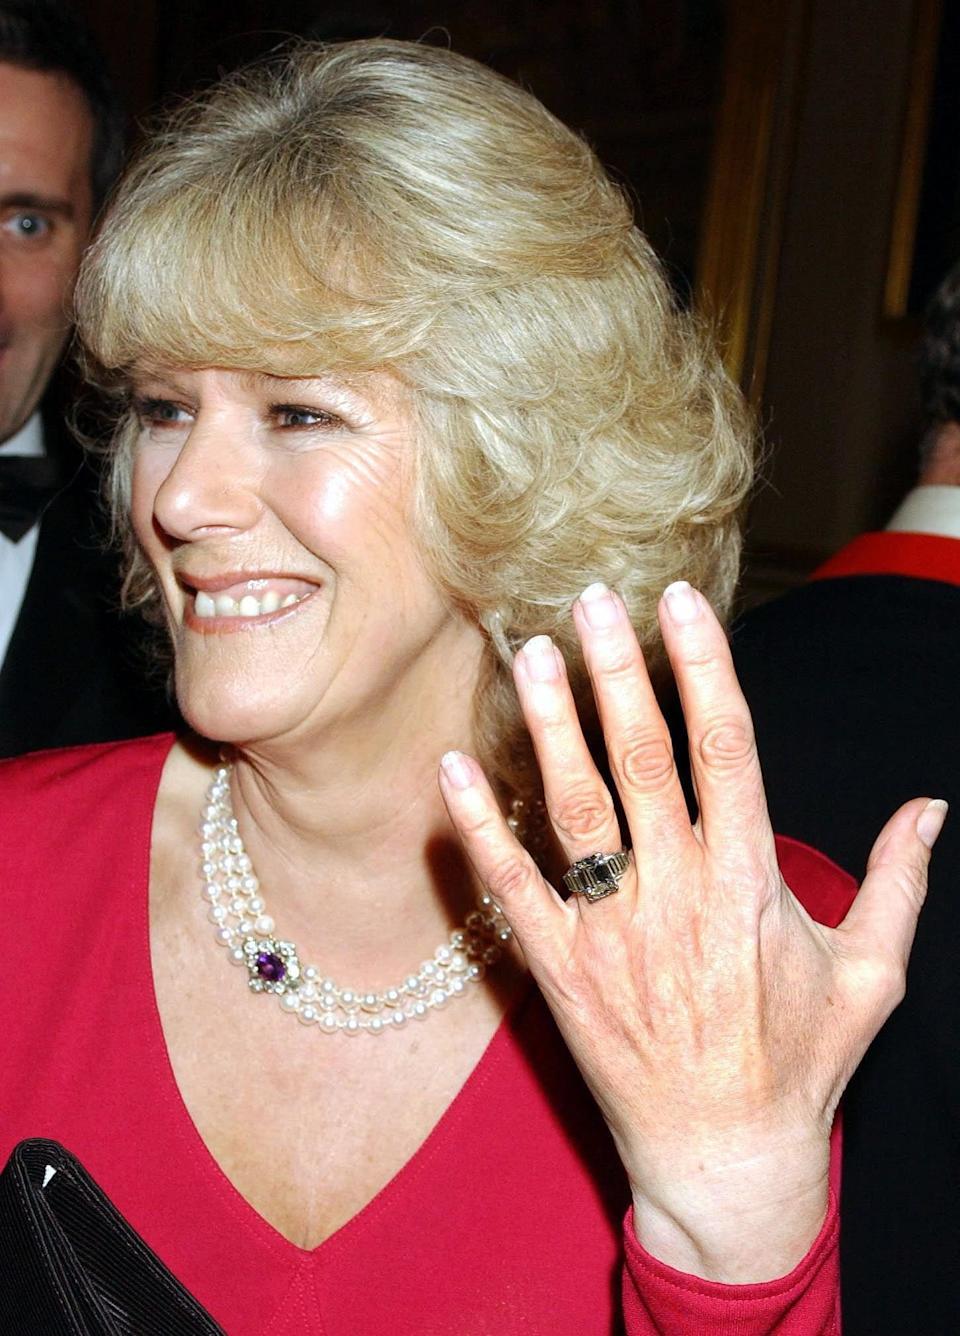 Camilla Parker Bowles showing off her vintage diamond engagement ring in February 2005 - John Stillwell/PA/Pool